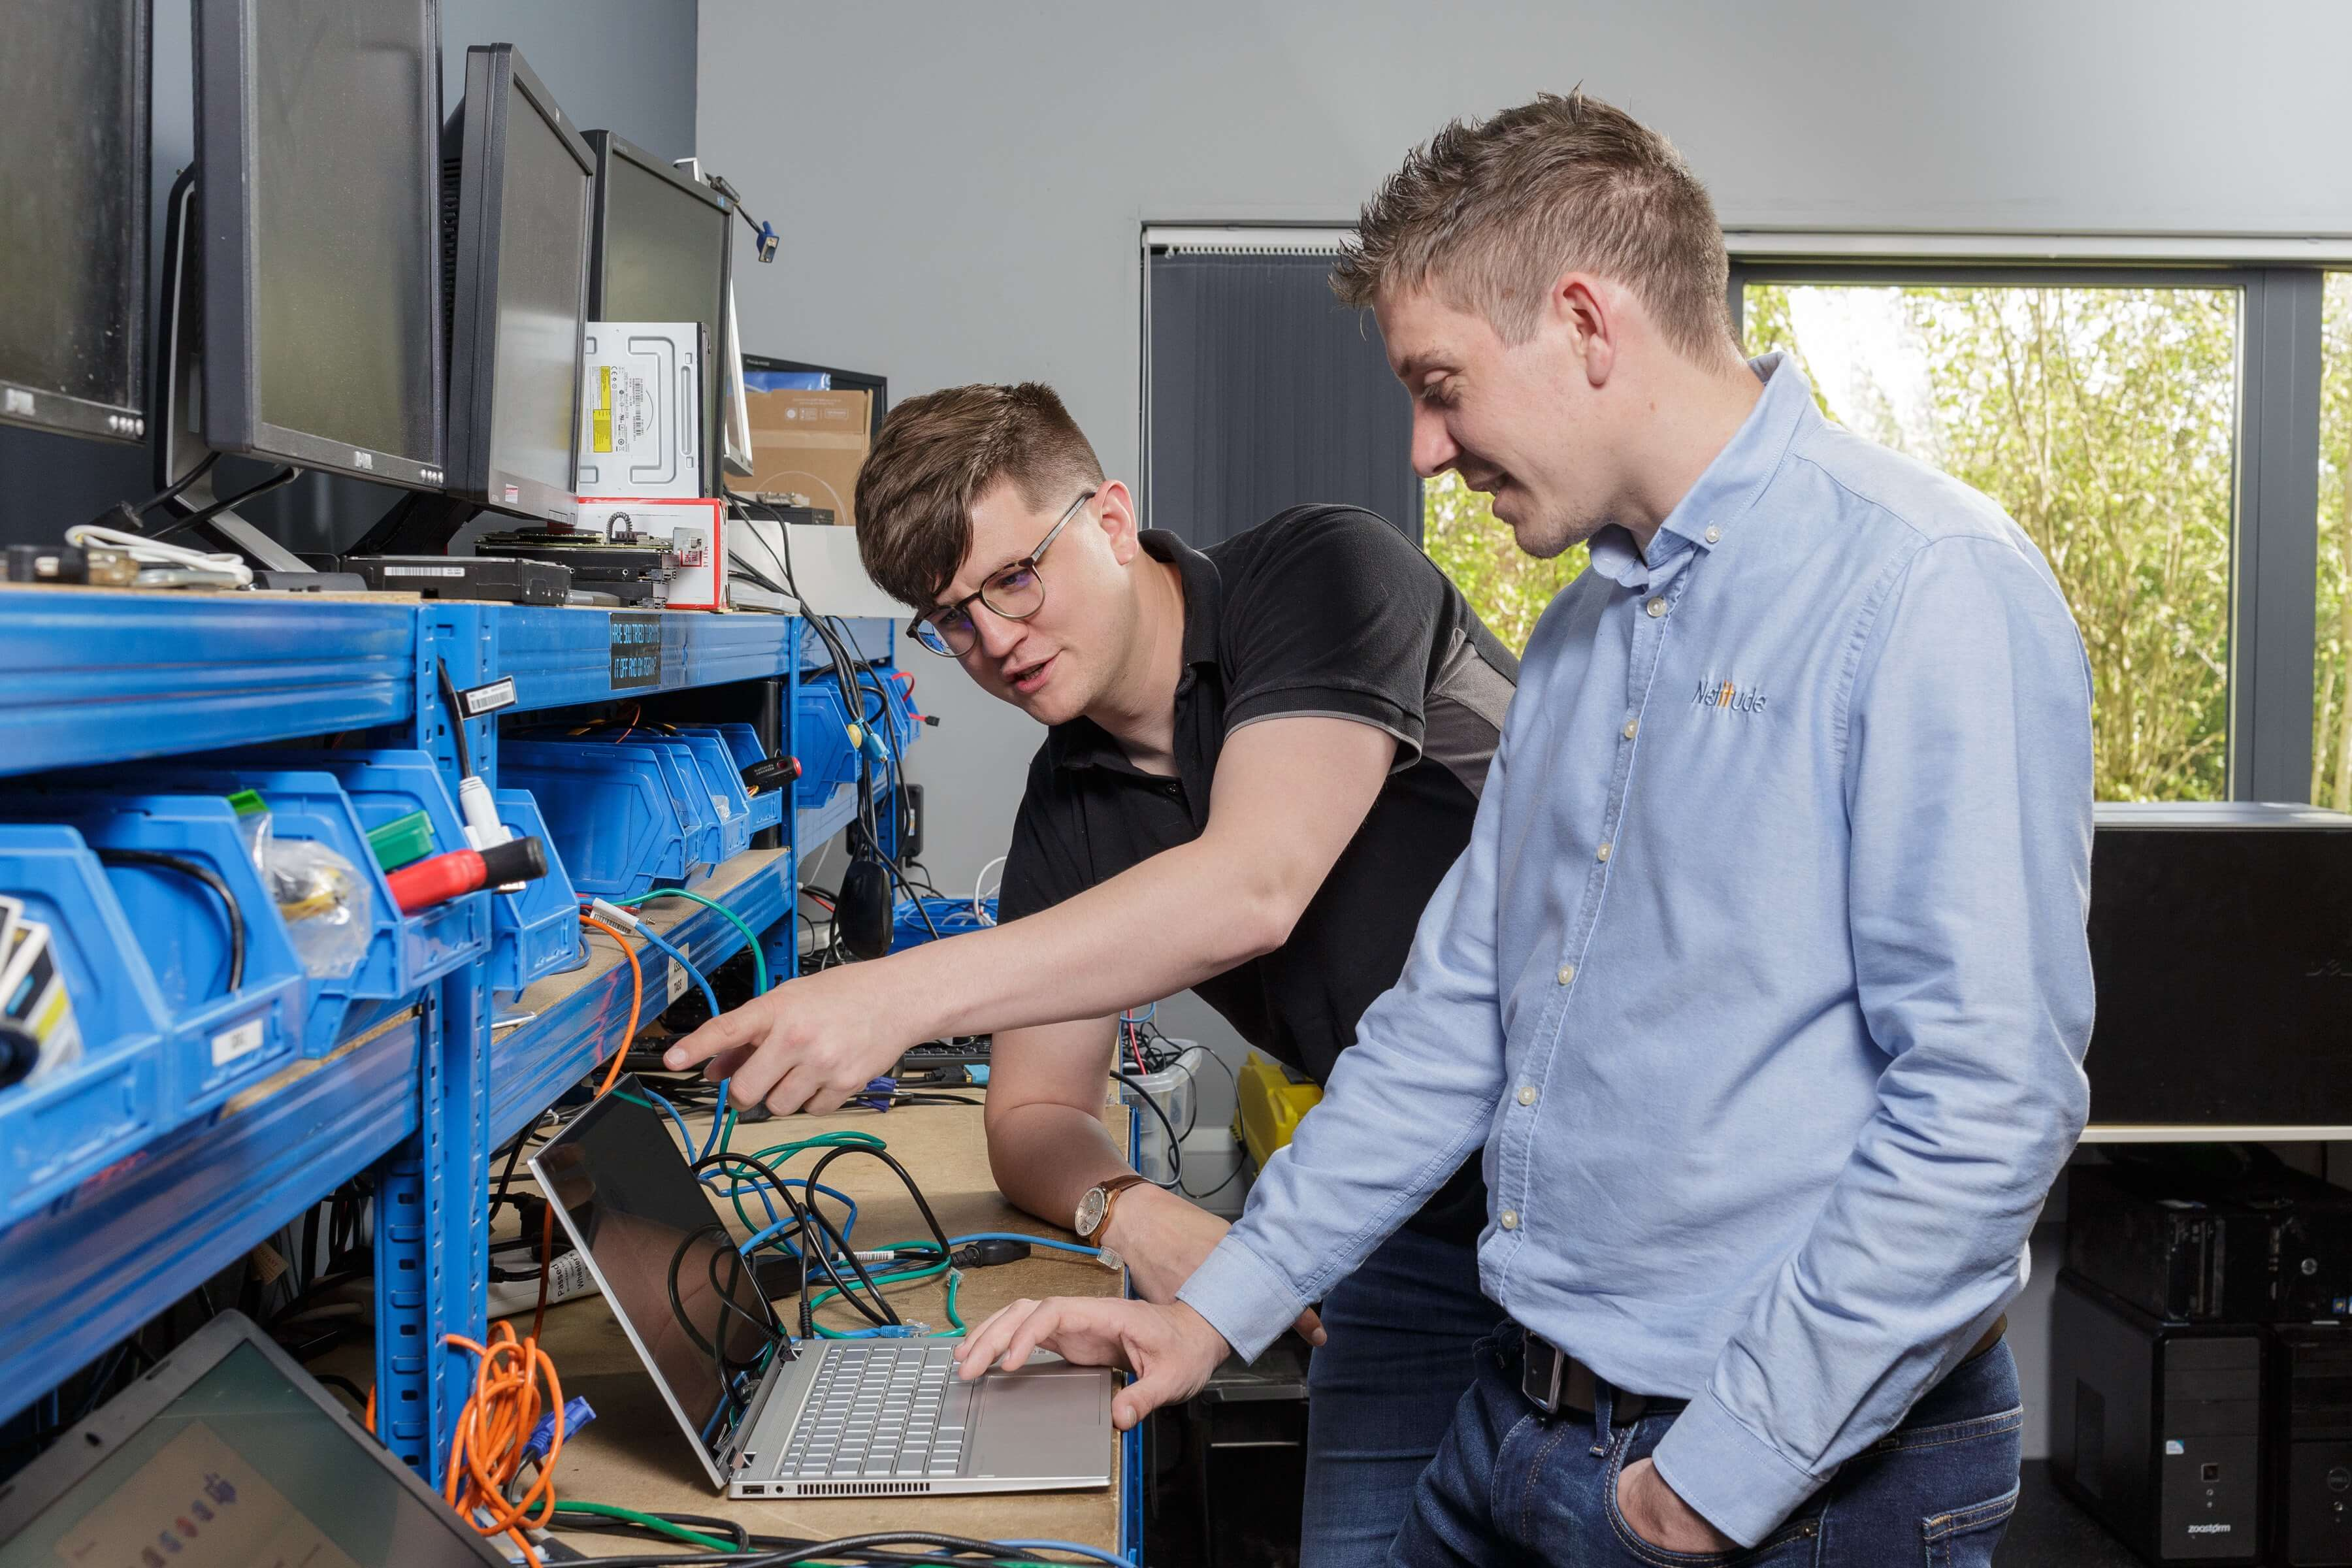 Two young male engineers setting up